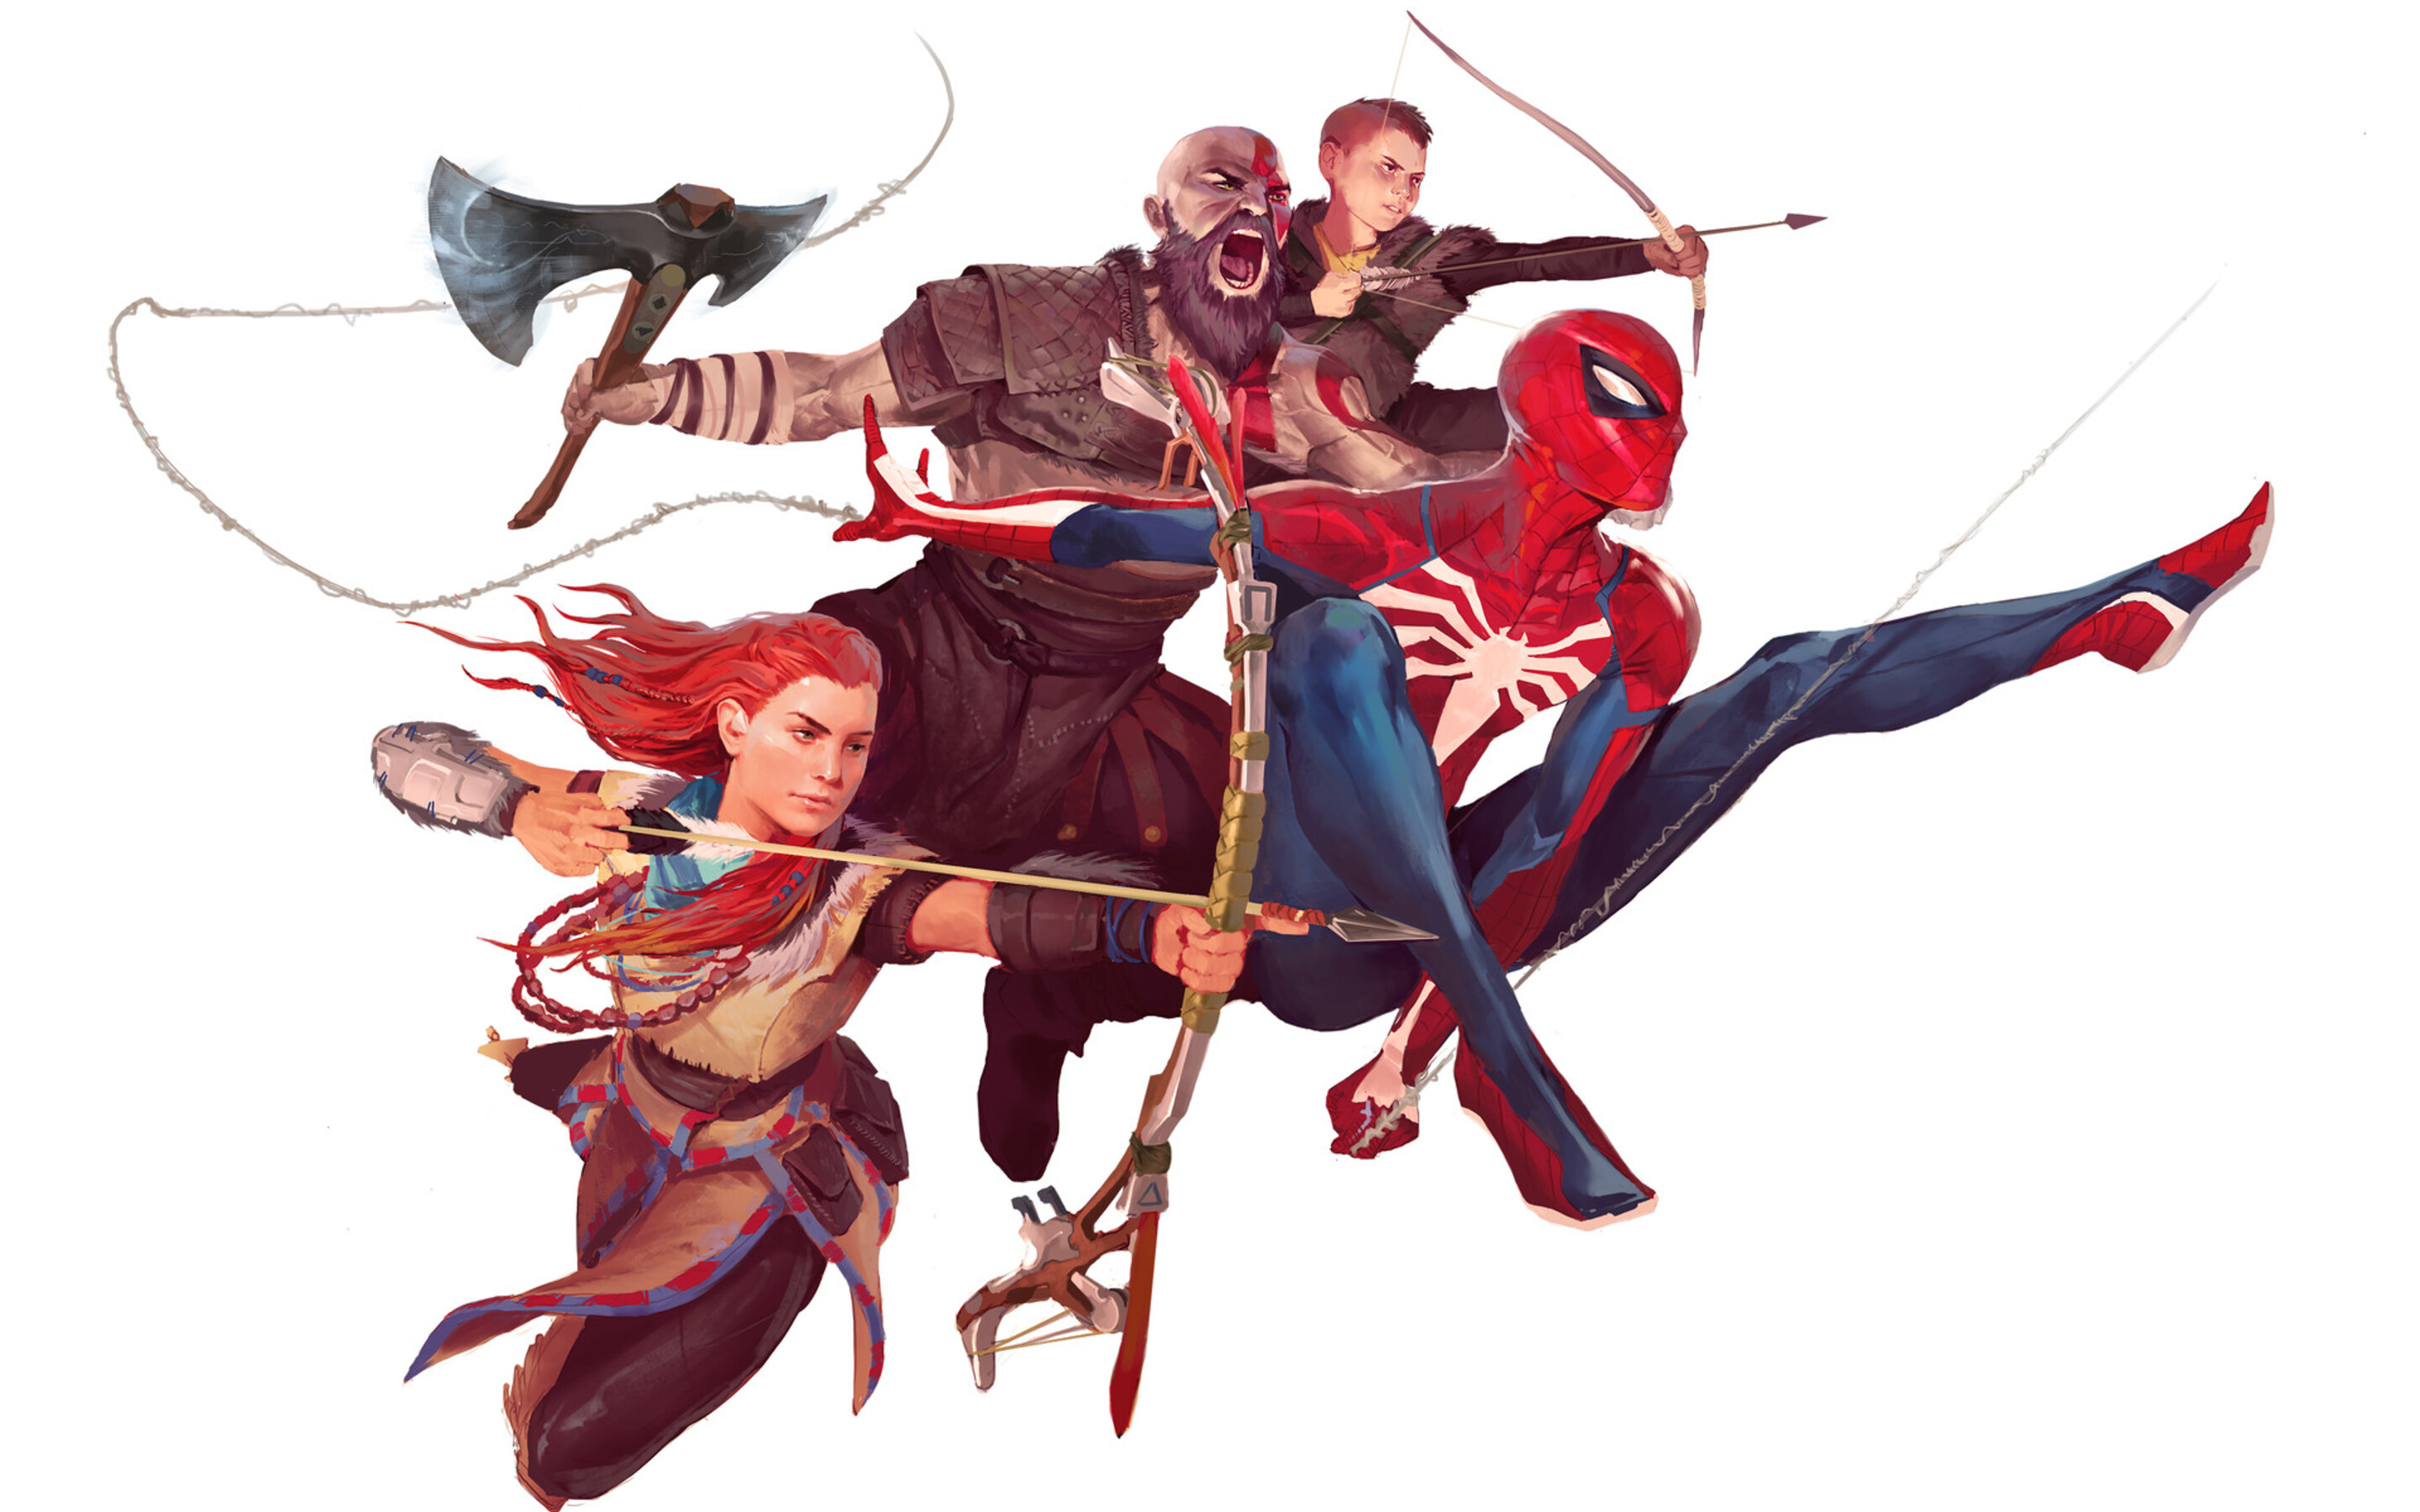 spiderman-and-god-of-war-characters-art-5m.jpg